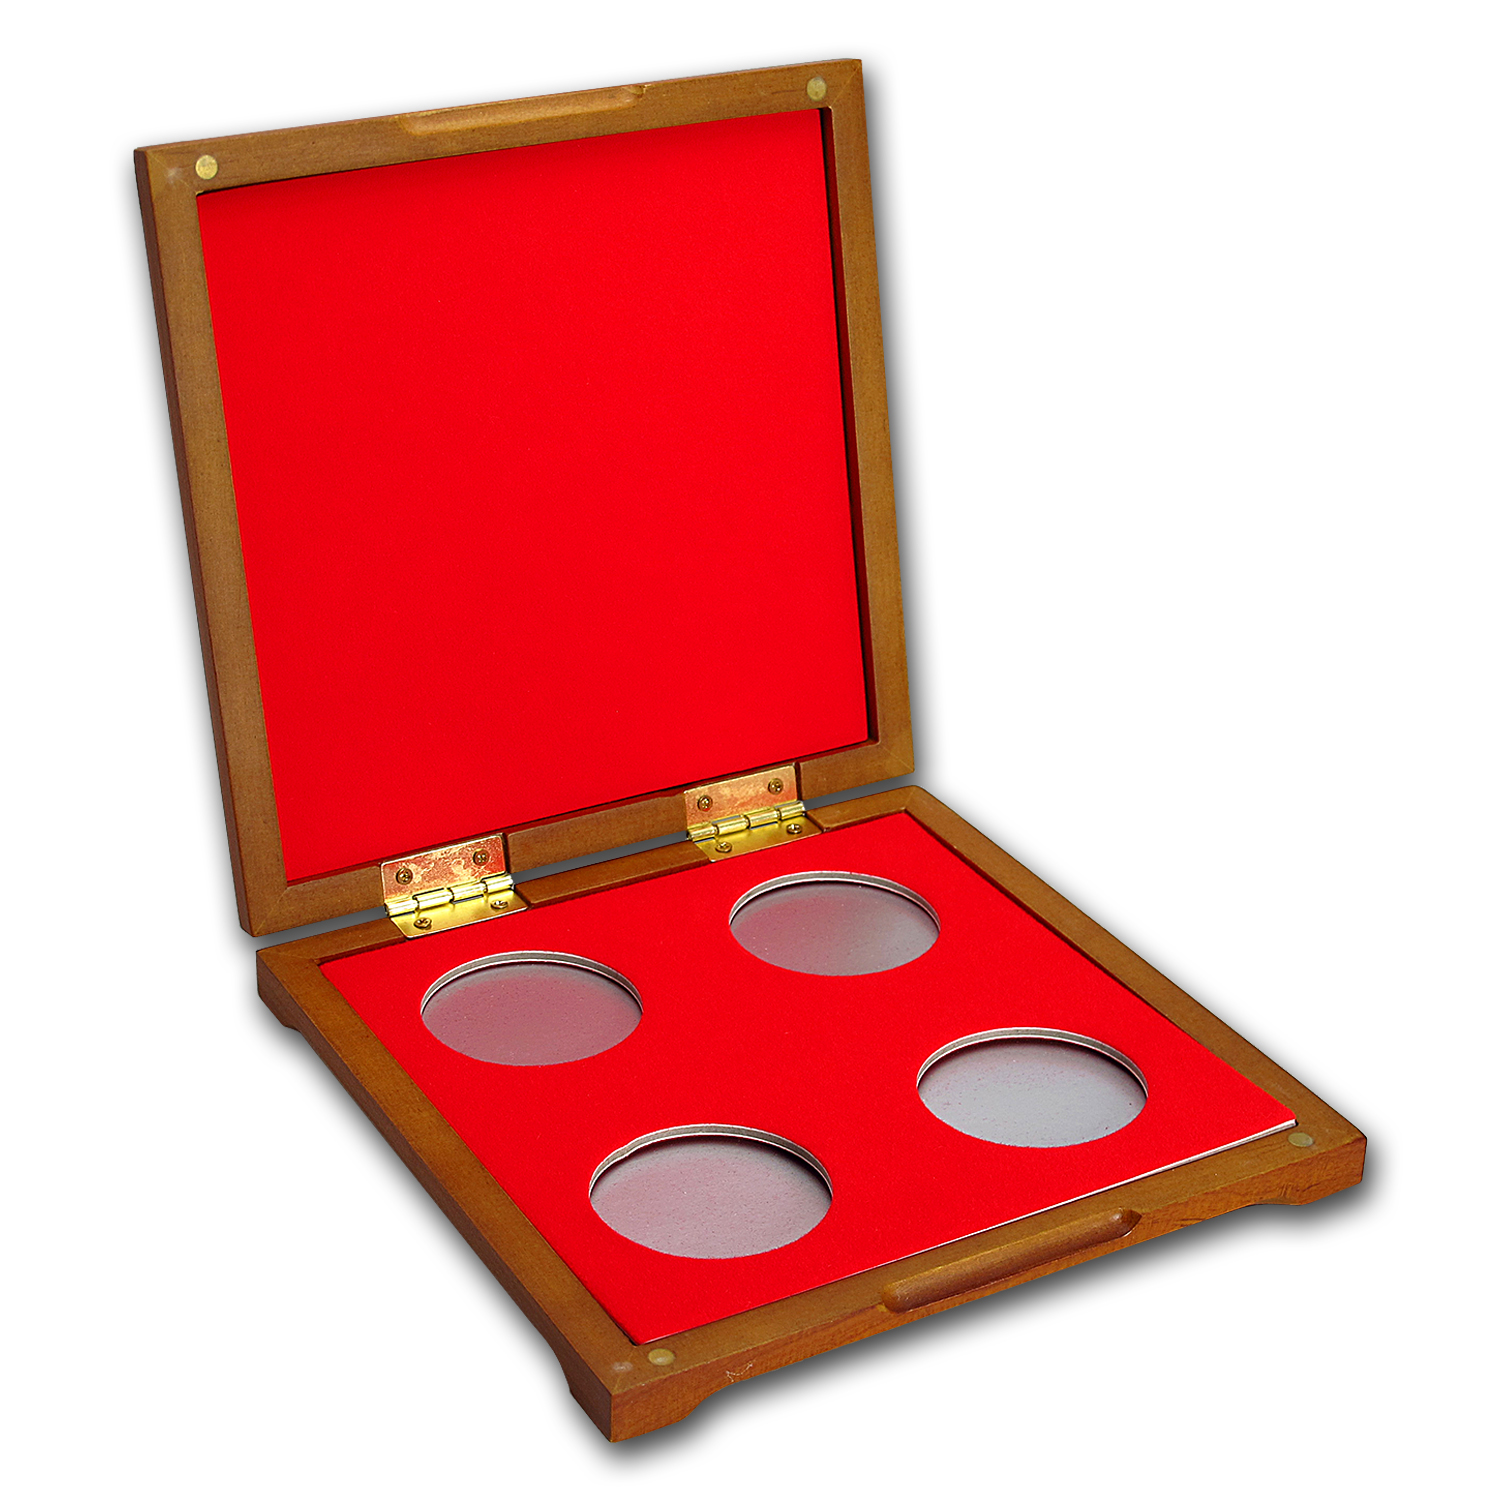 4 coin Wood Presentation Box - Fits Up to 40 mm (Red Interior)